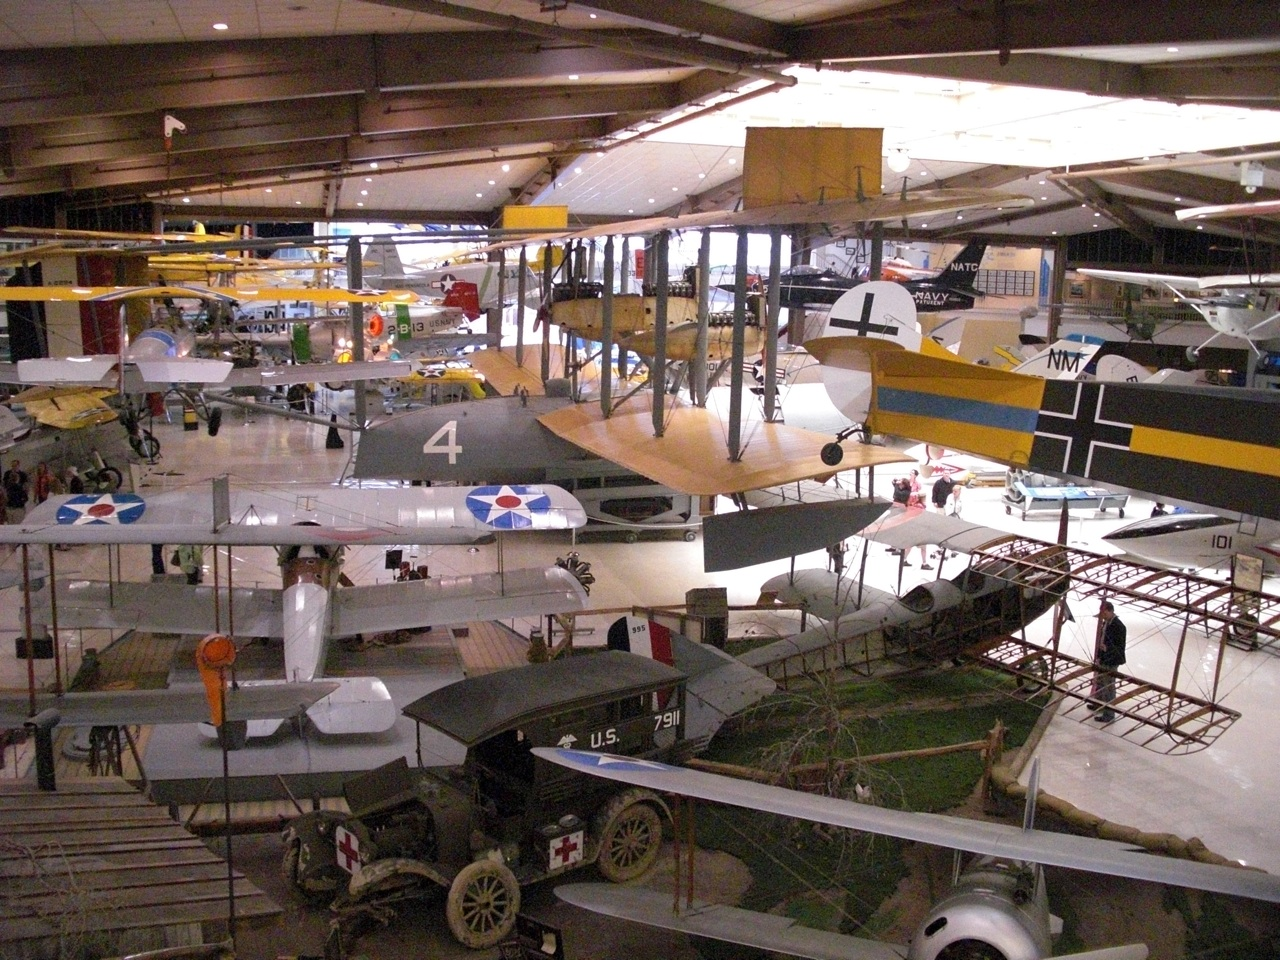 Lots of Planes to See Inside the Museum